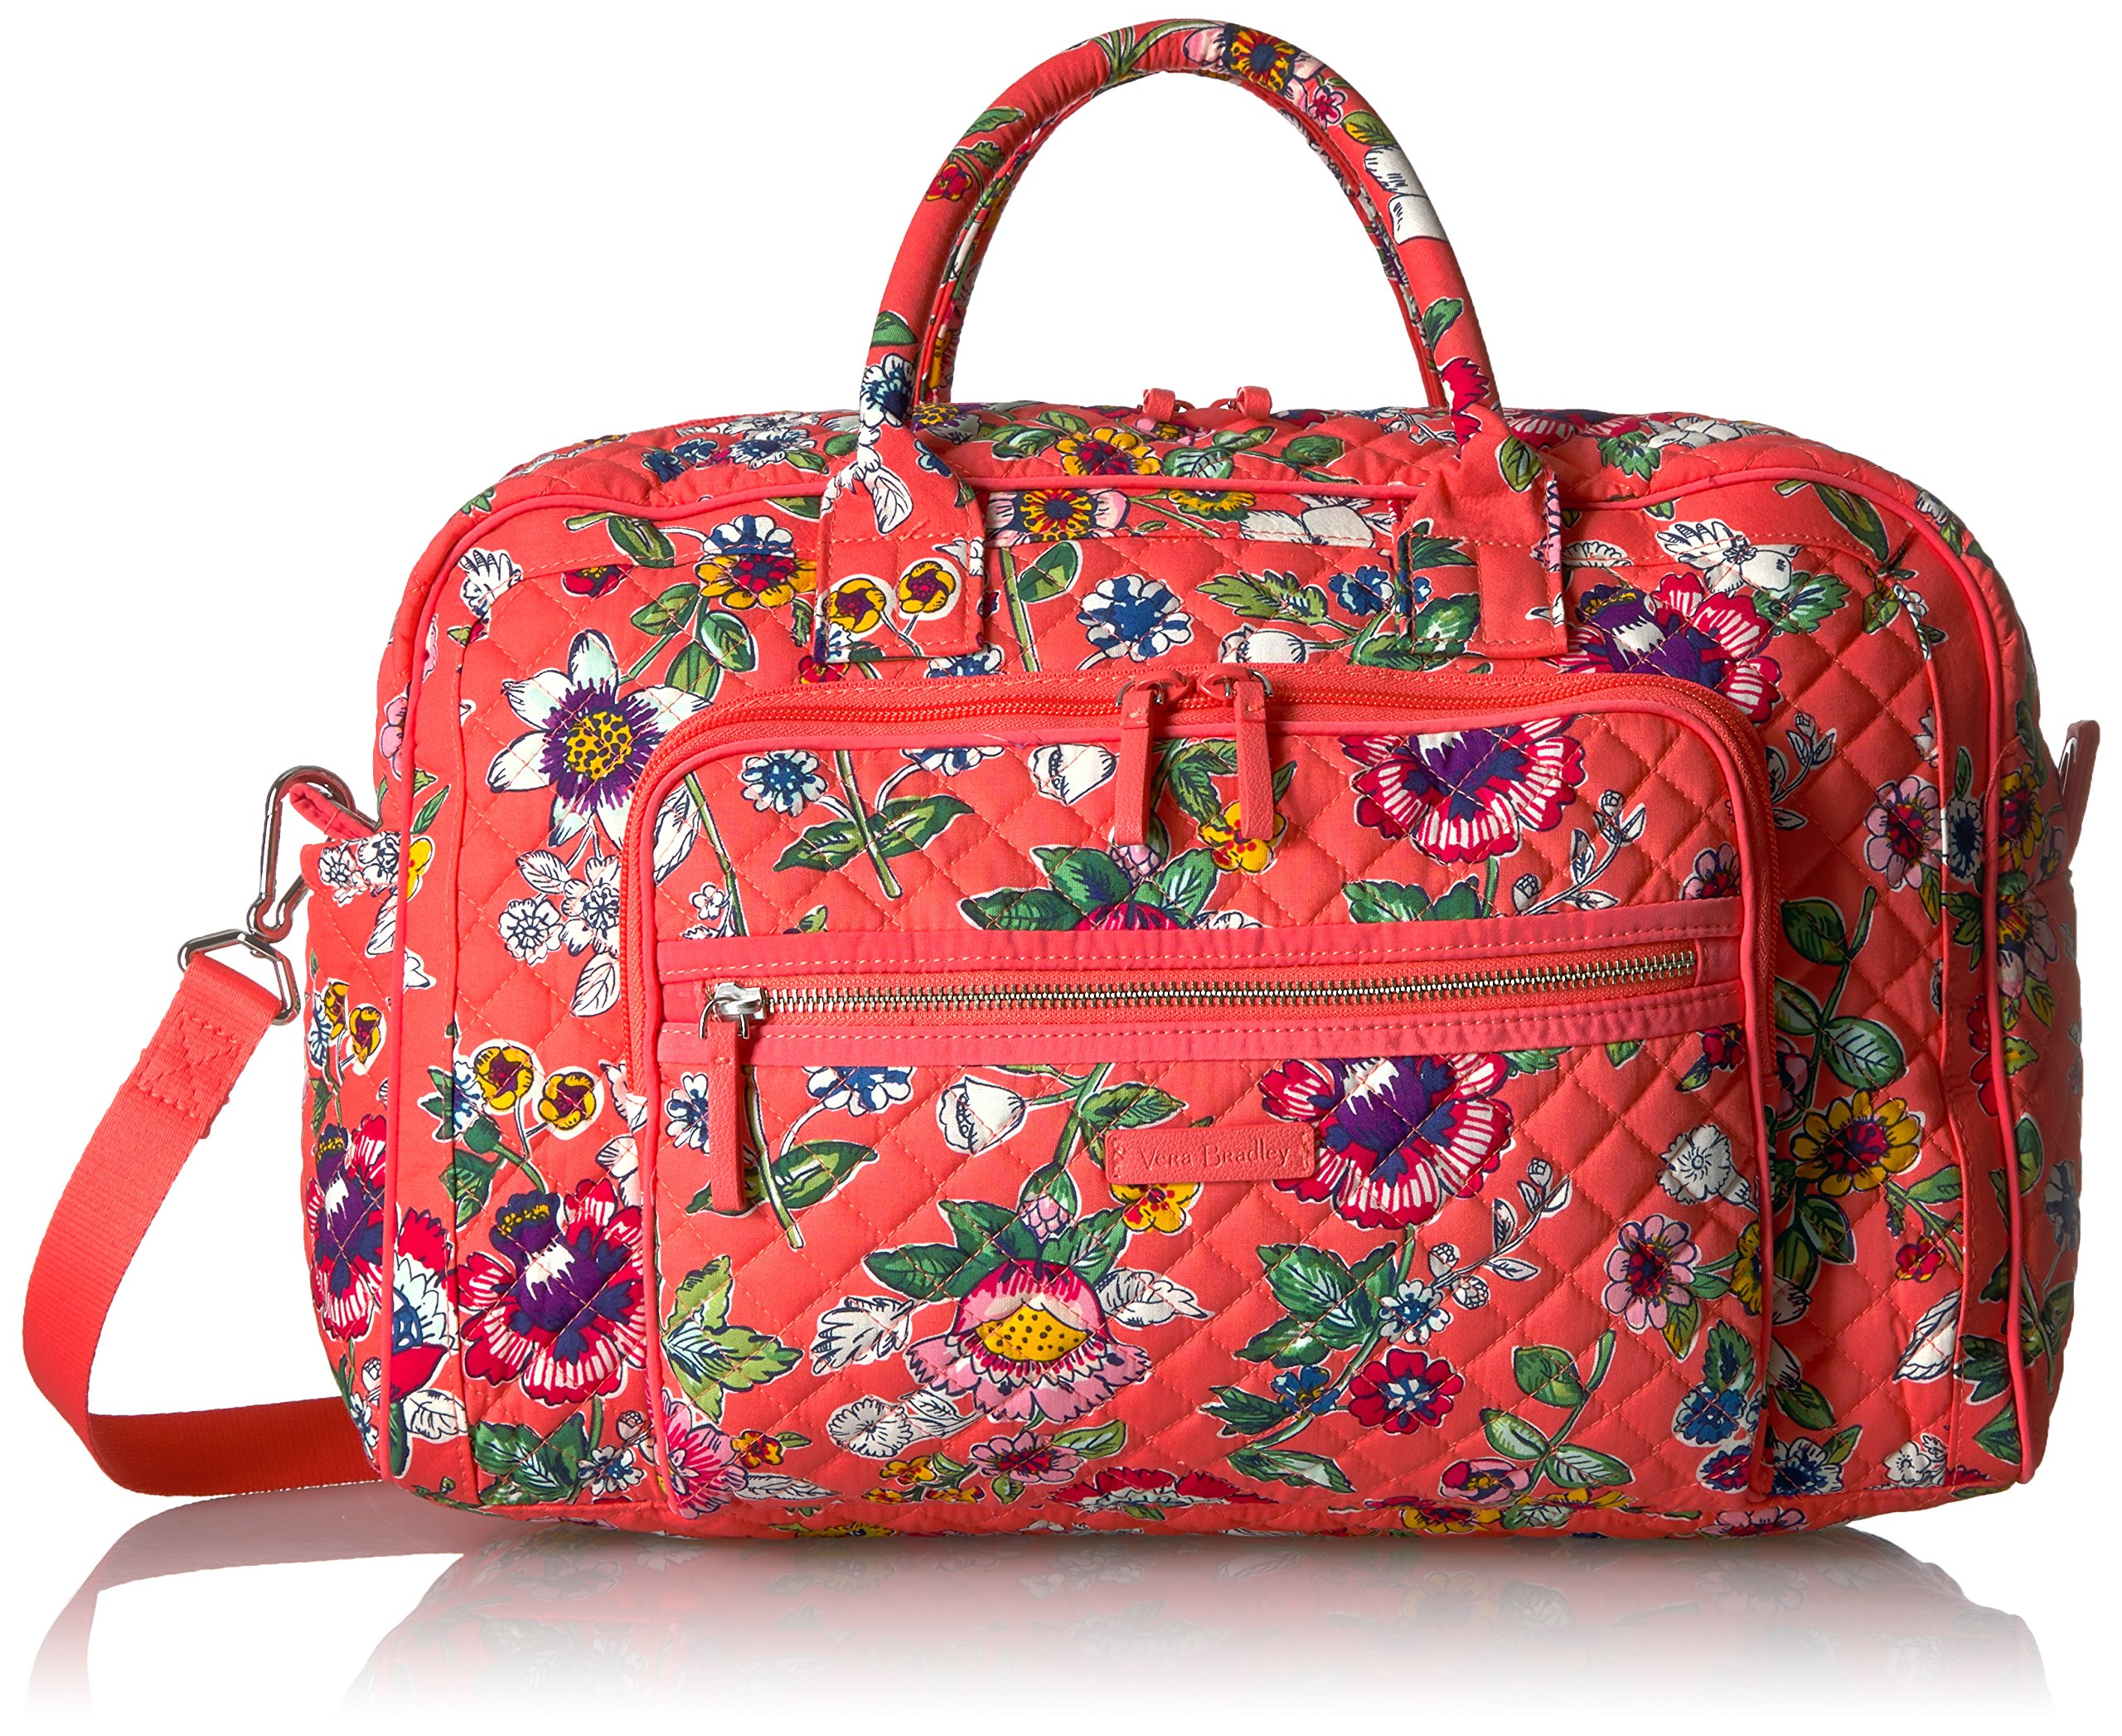 38953bdc0cb5 Get Quotations · Vera Bradley Iconic Compact Weekender Travel Bag